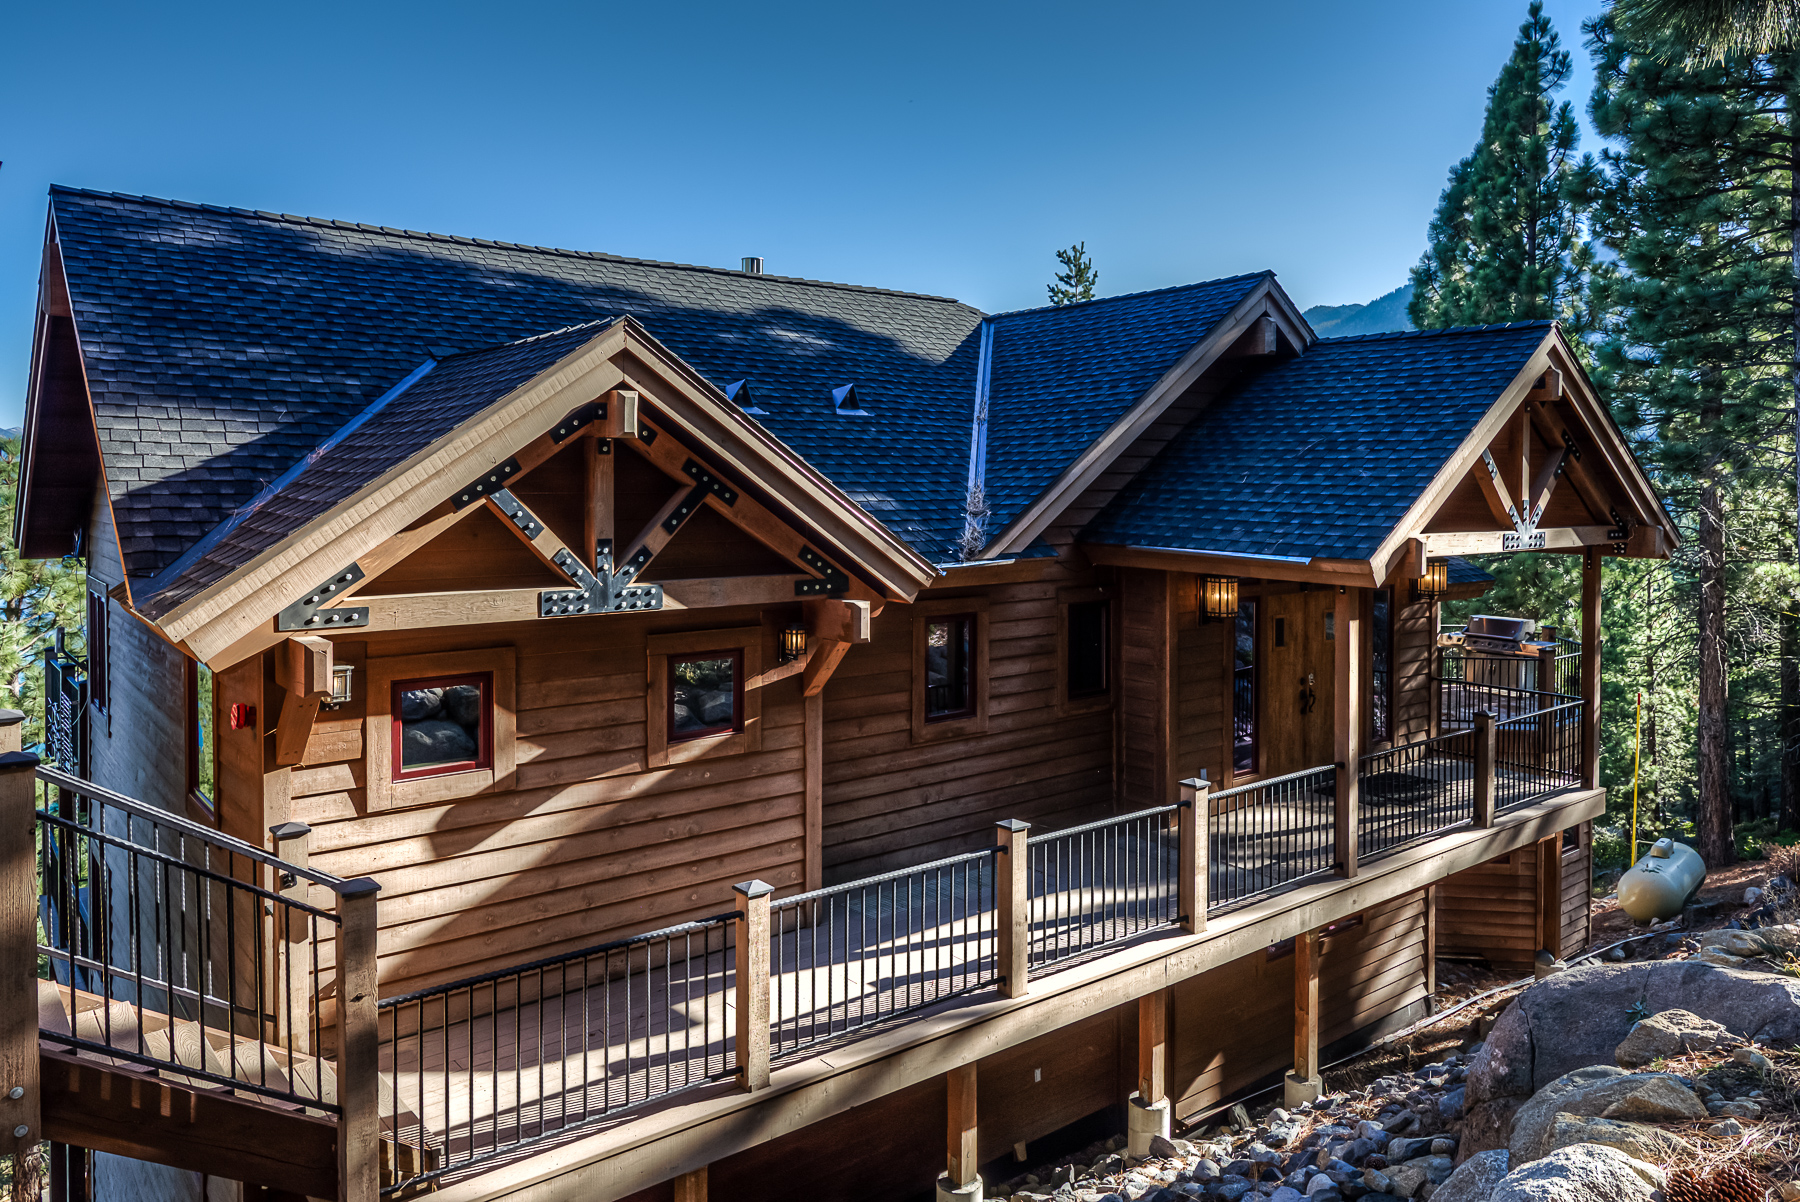 north pin shore cabins construction nsm home rent lake built tahoe by custom for